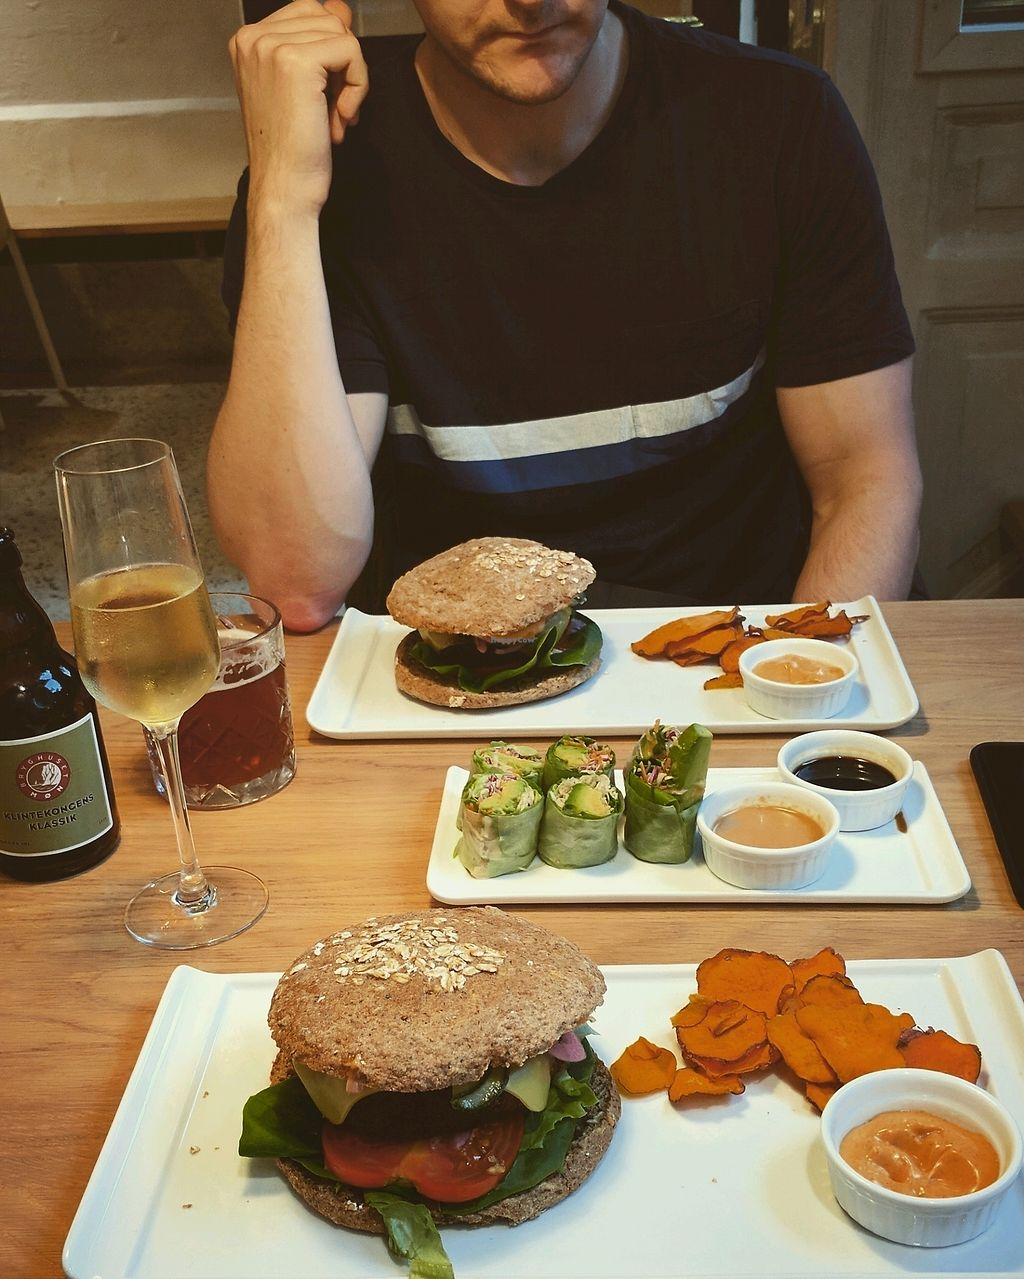 """Photo of simpleRAW  by <a href=""""/members/profile/KarenClement"""">KarenClement</a> <br/>warm cheeseburger, avocado wraps, beer and cava <br/> August 25, 2017  - <a href='/contact/abuse/image/59290/296921'>Report</a>"""